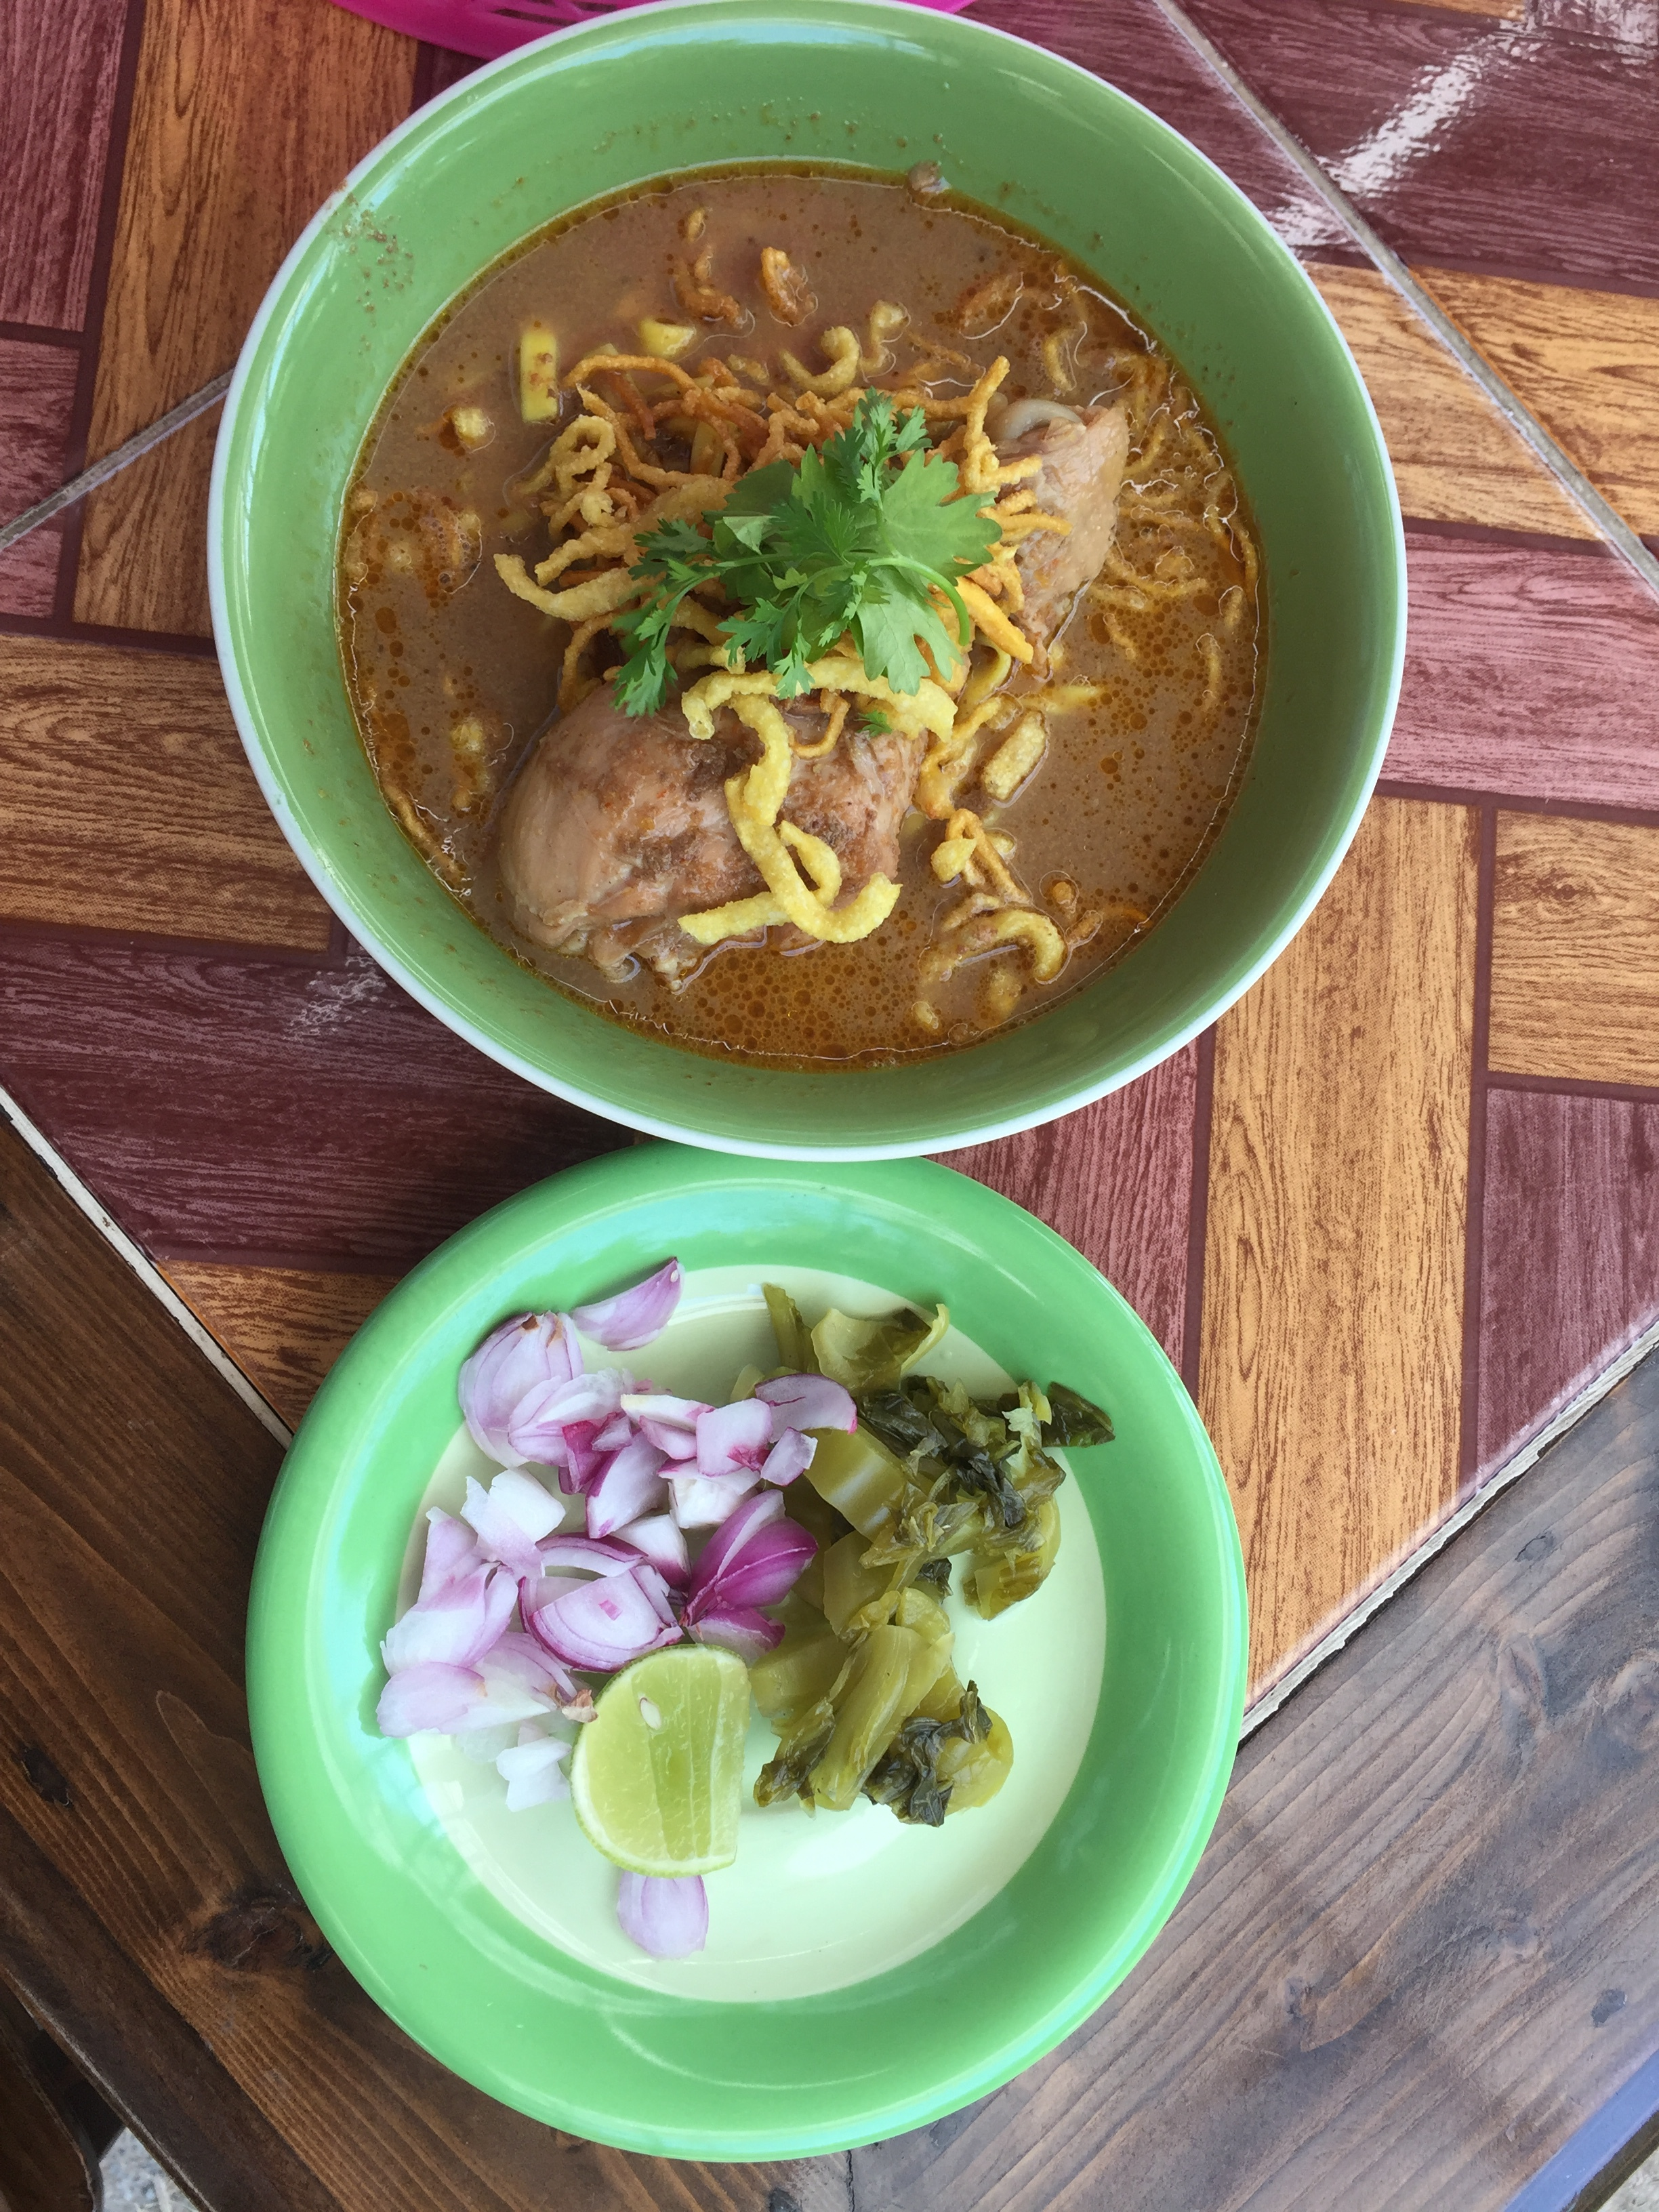 Khao Soi Gai from Chiangmai Thailand, 15 baht (or about 30 cents) per bowl.